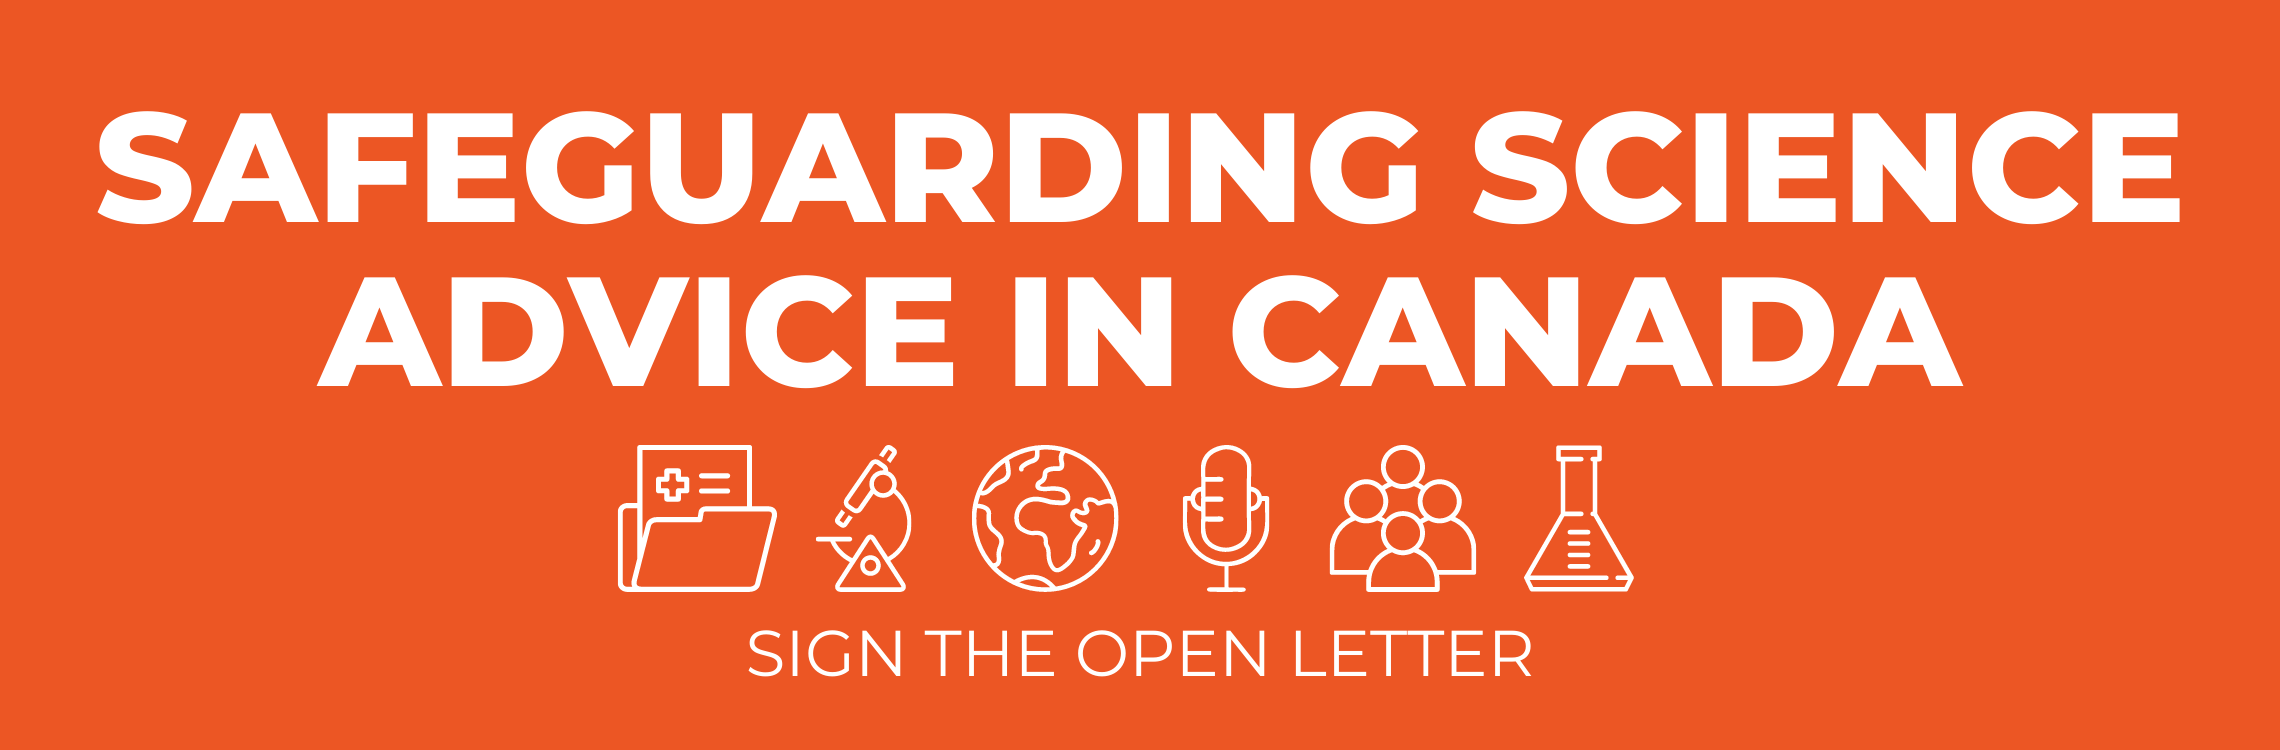 "The text ""Safeguarding science advice in Canada"" over six icons of a medical file, a microscope, a globe, a microphone, a group of people, and a beaker"". Below are the words ""Sign the open letter"". All text is white over an orange background."